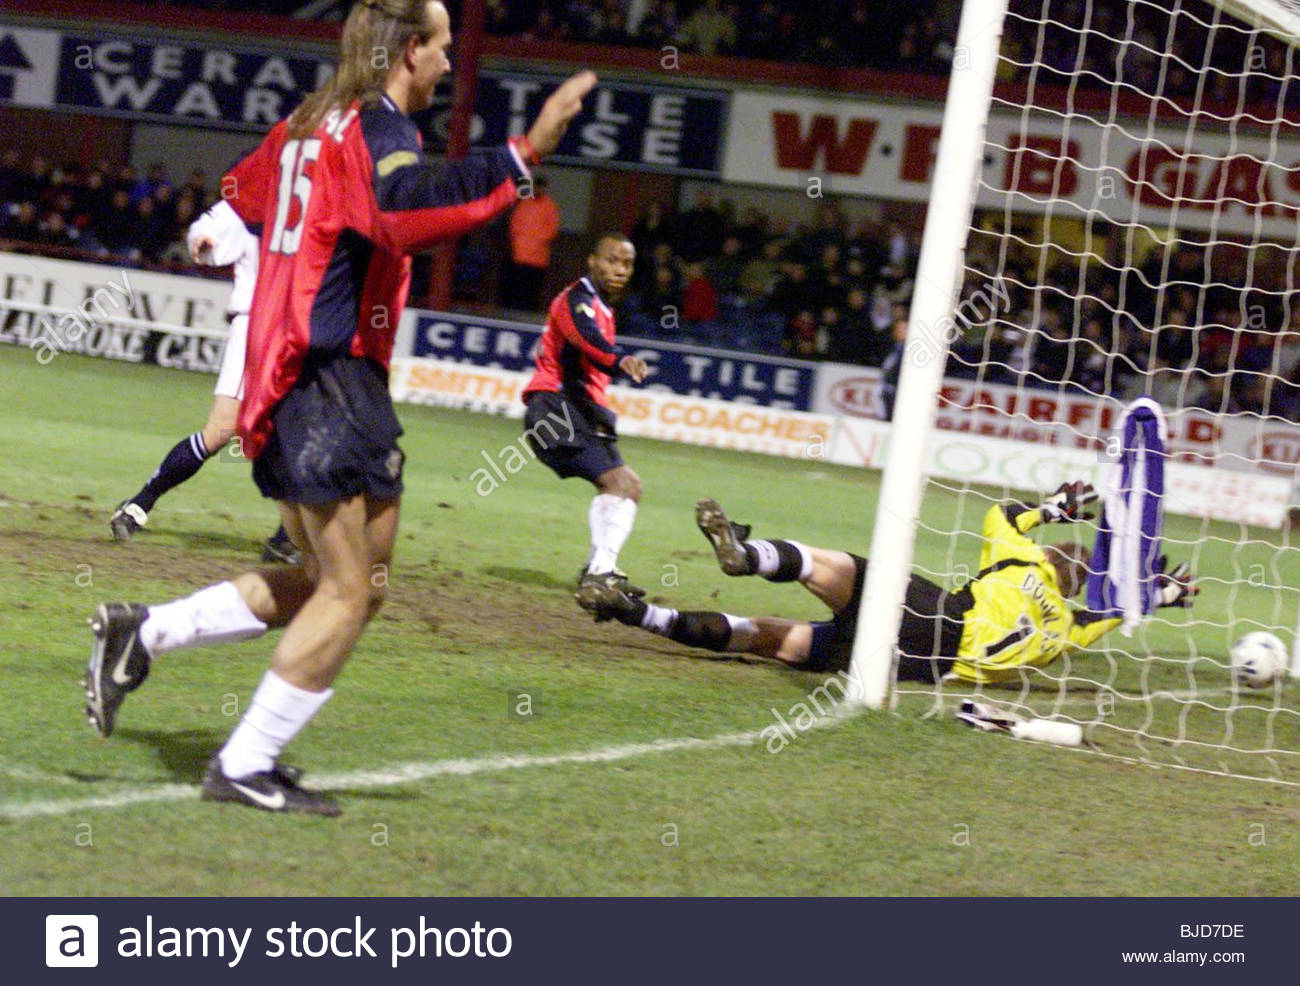 27/02/00 SPL DUNDEE V RANGERS (1-7) DENS PARK - DUNDEE Sebastian Rozental watches as Rod Wallace slots the ball - Stock Image